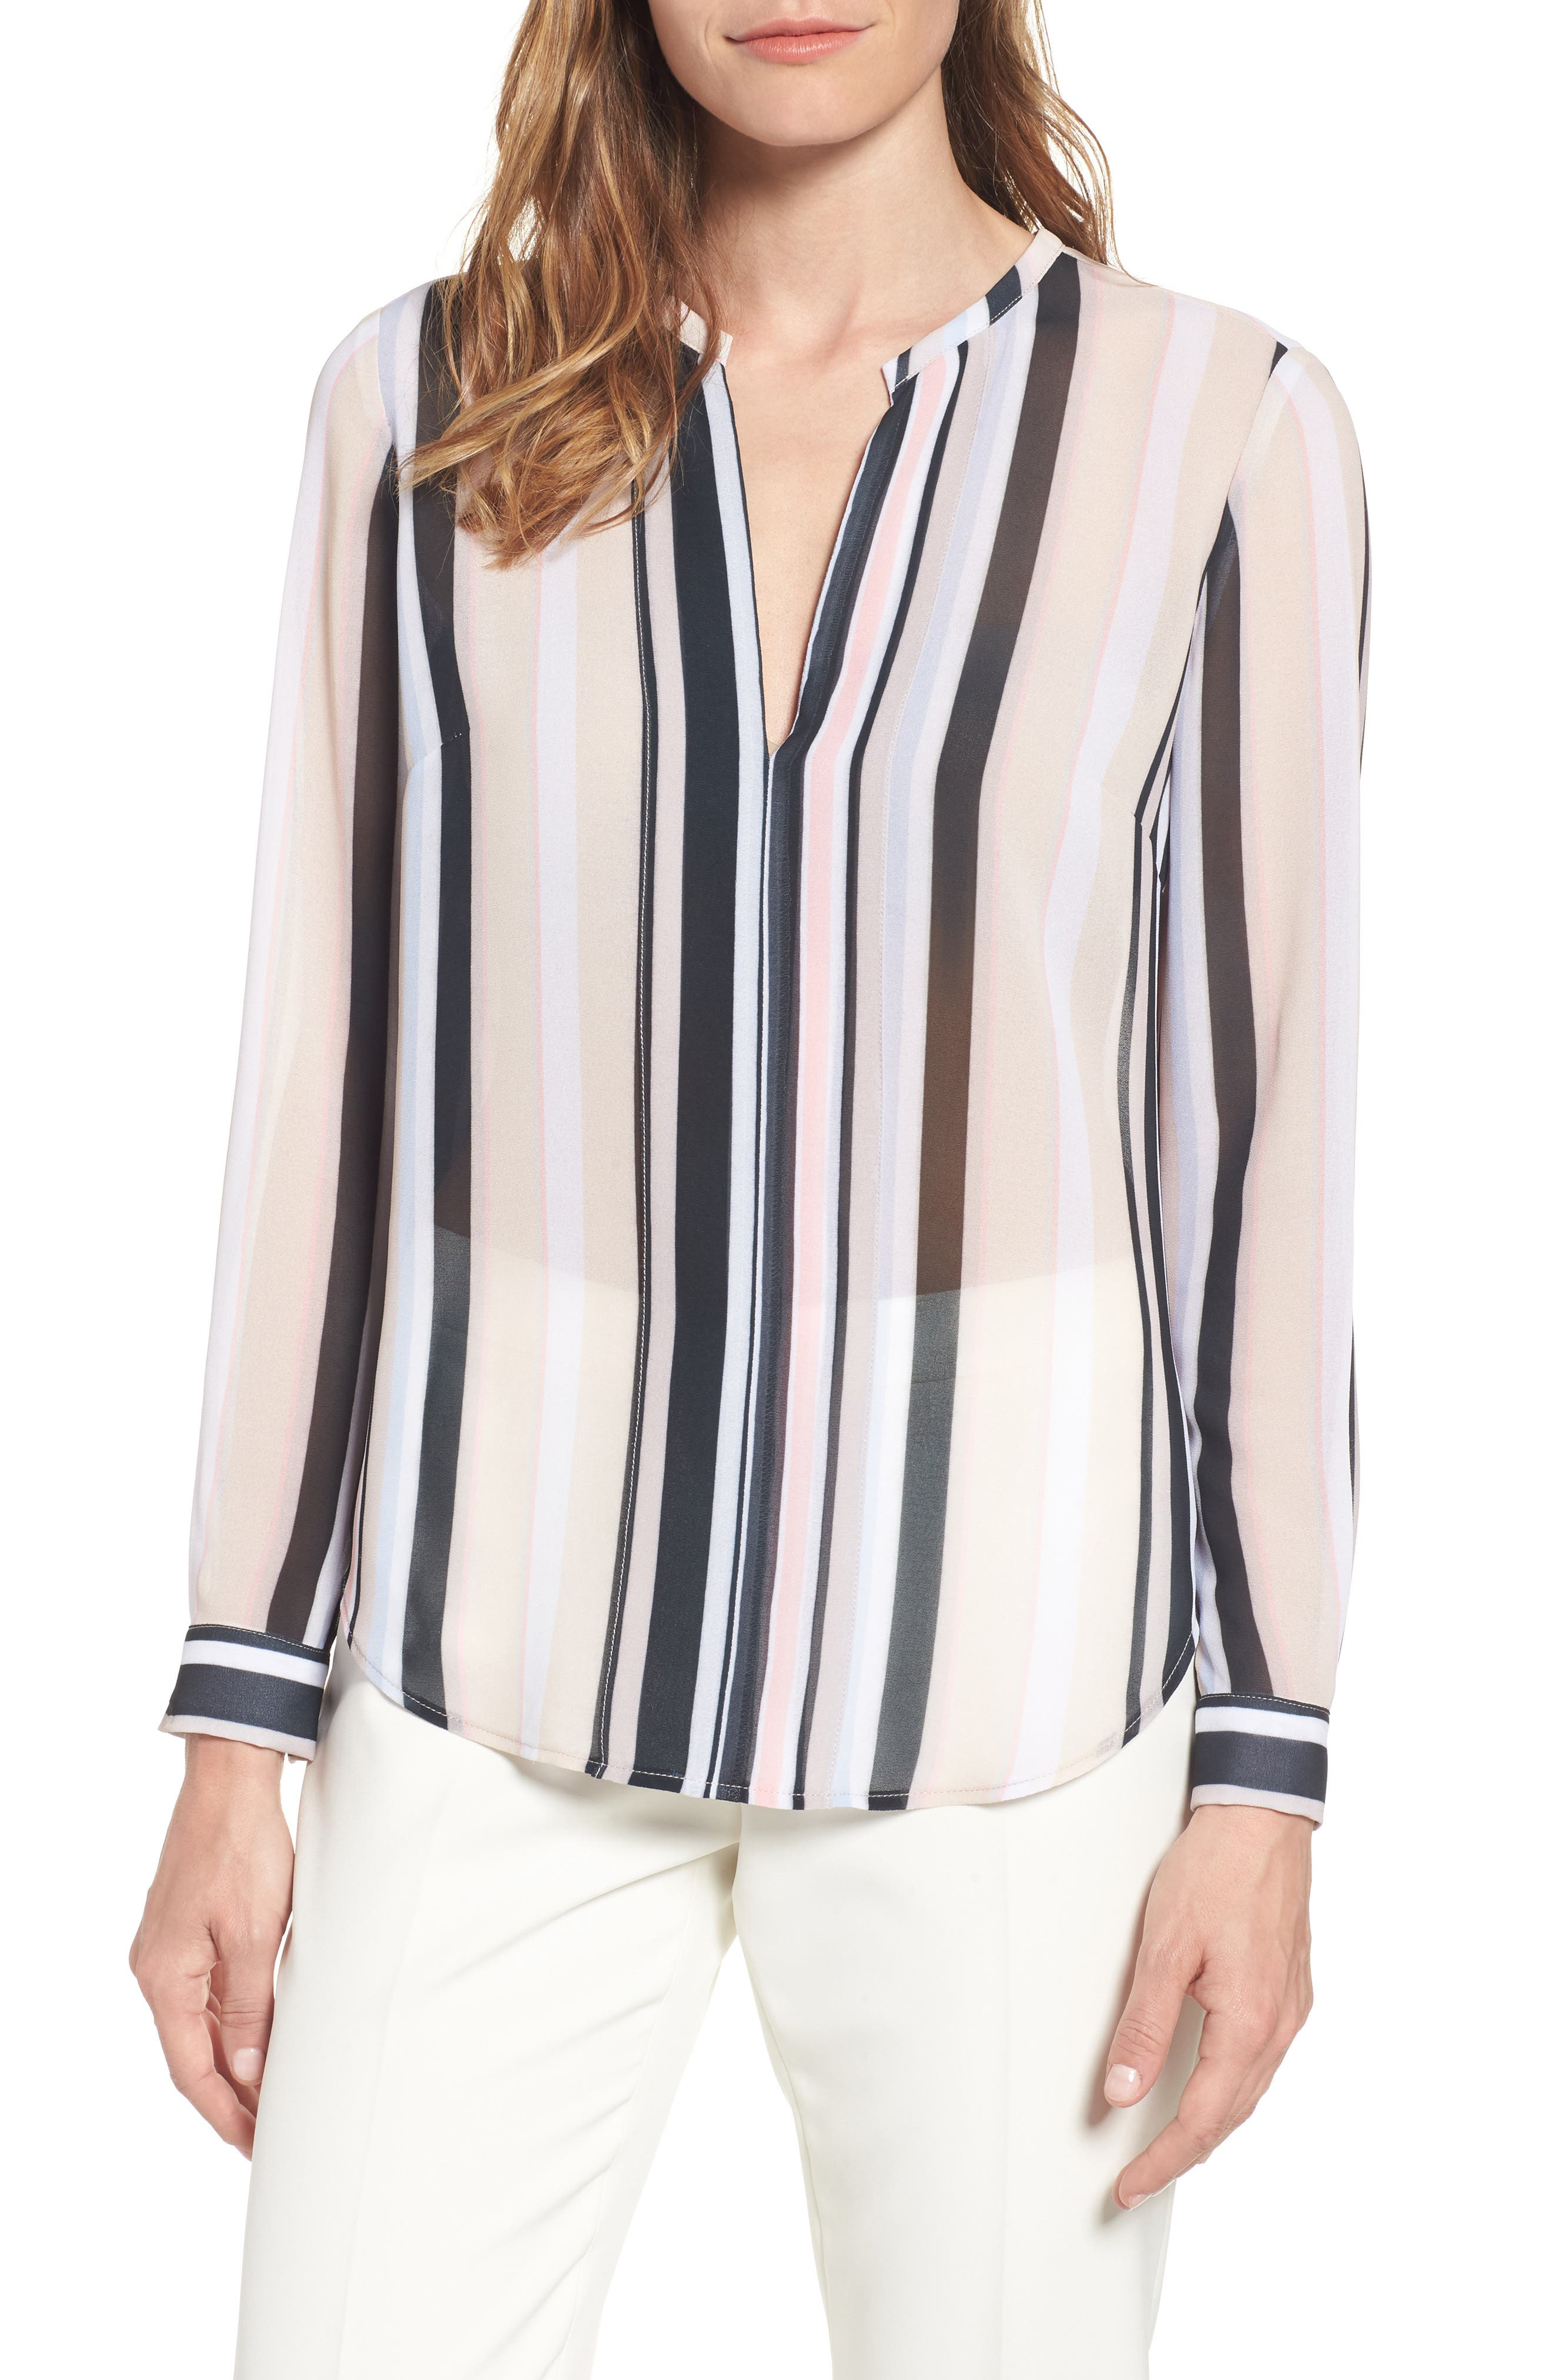 Alternate Image 1 Selected - Anne Klein Stripe Sheer Blouse